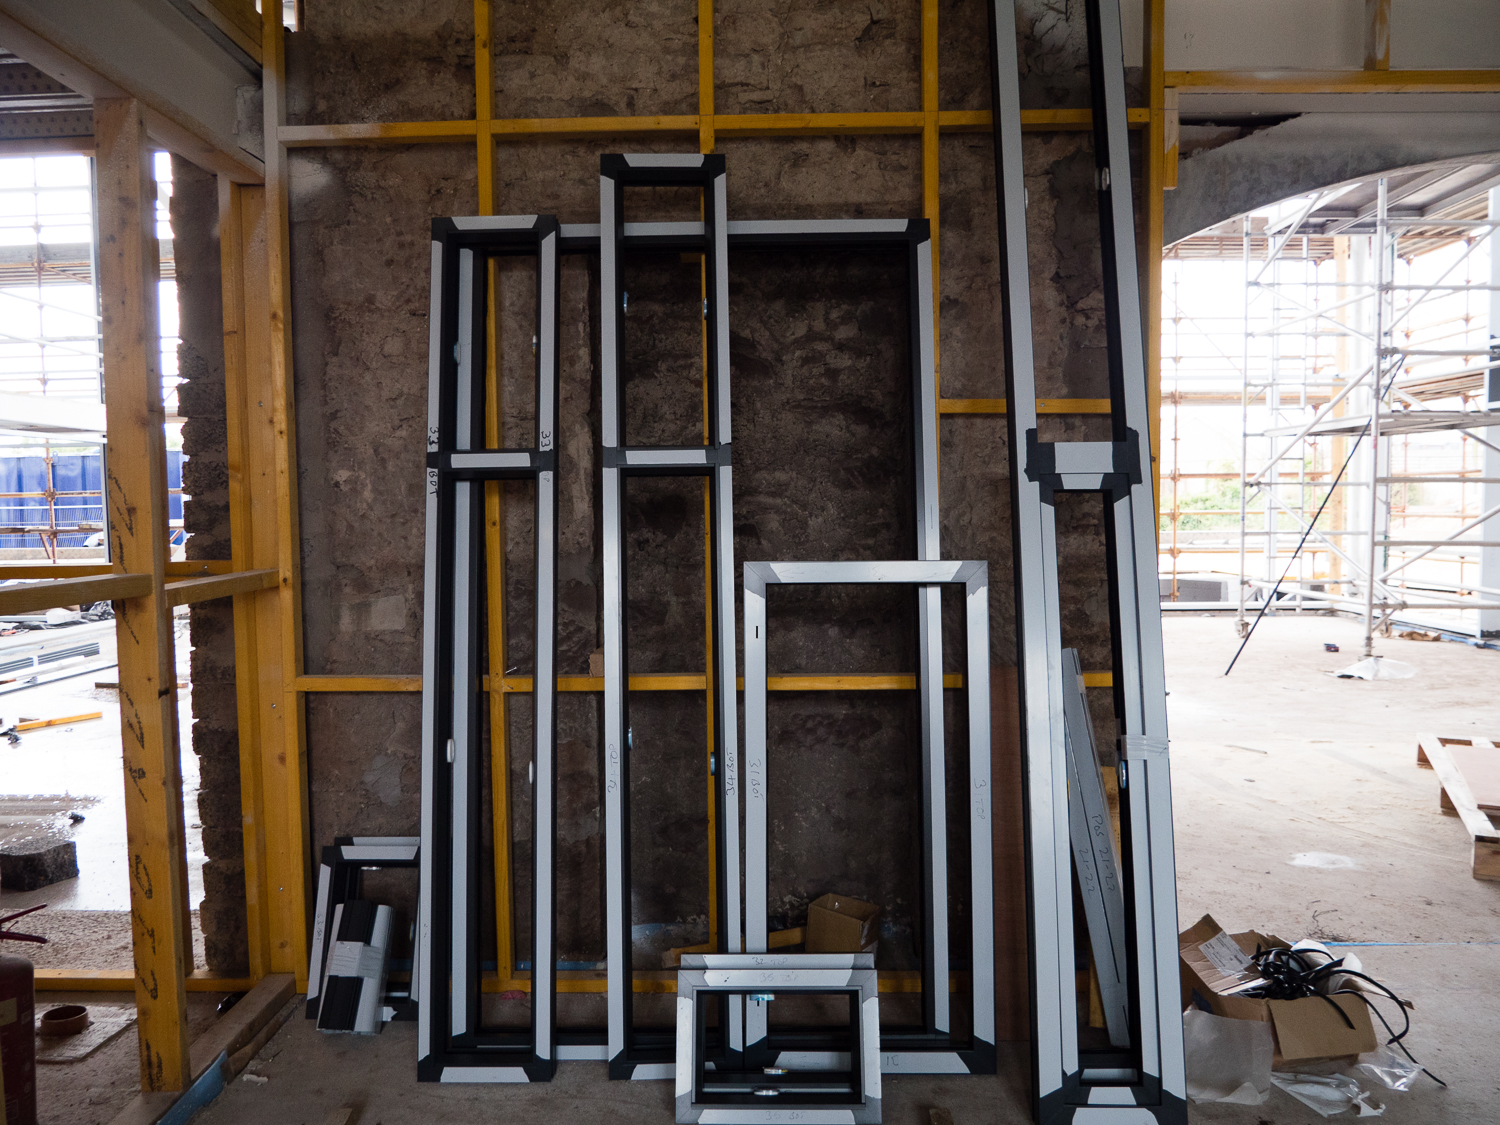 Window frames waiting to be installed